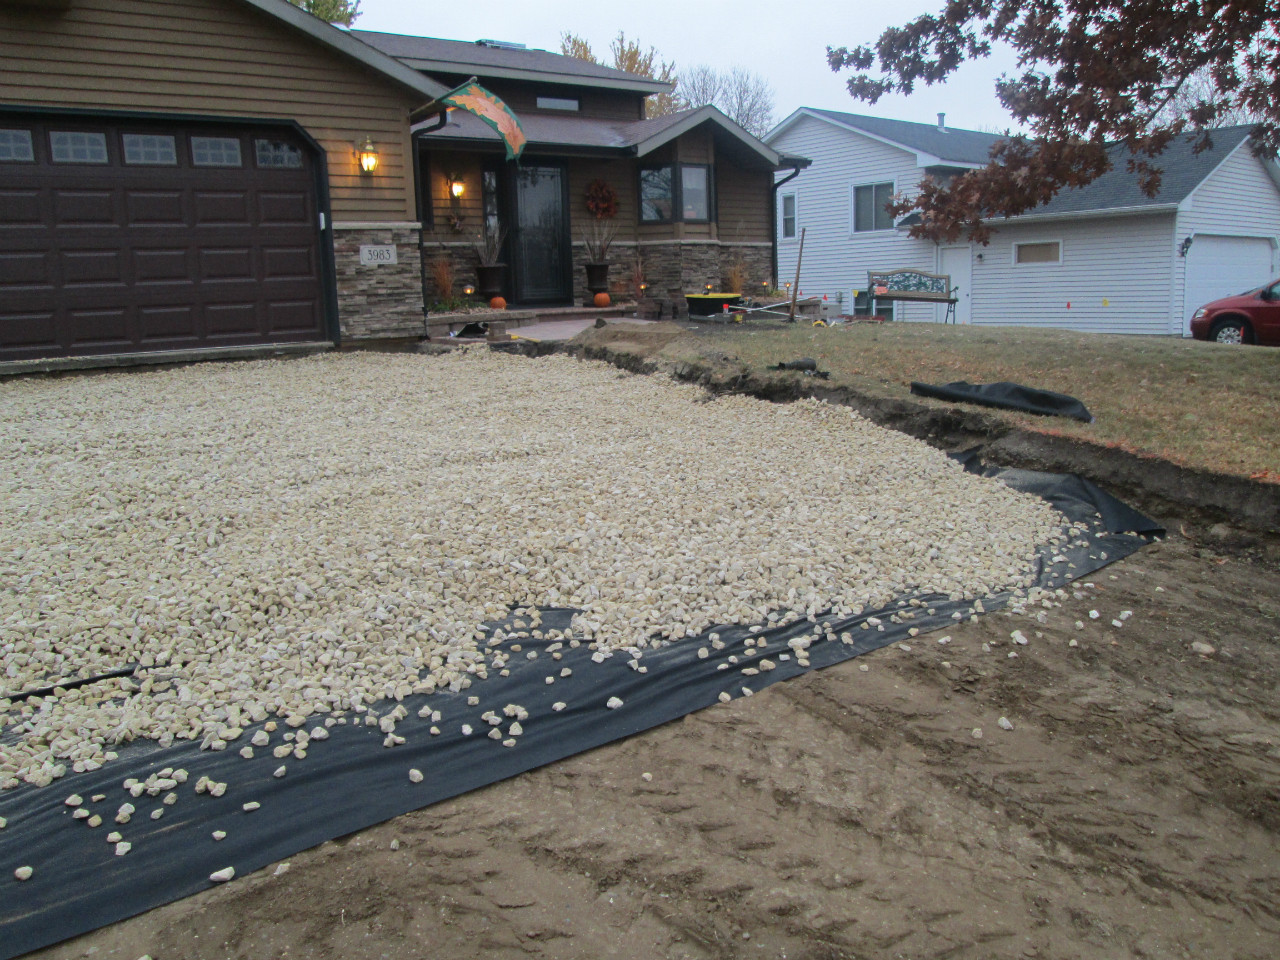 Best ideas about DIY Paver Driveway . Save or Pin Front Driveway Design Ideas Paver Designs line Tiles Now.